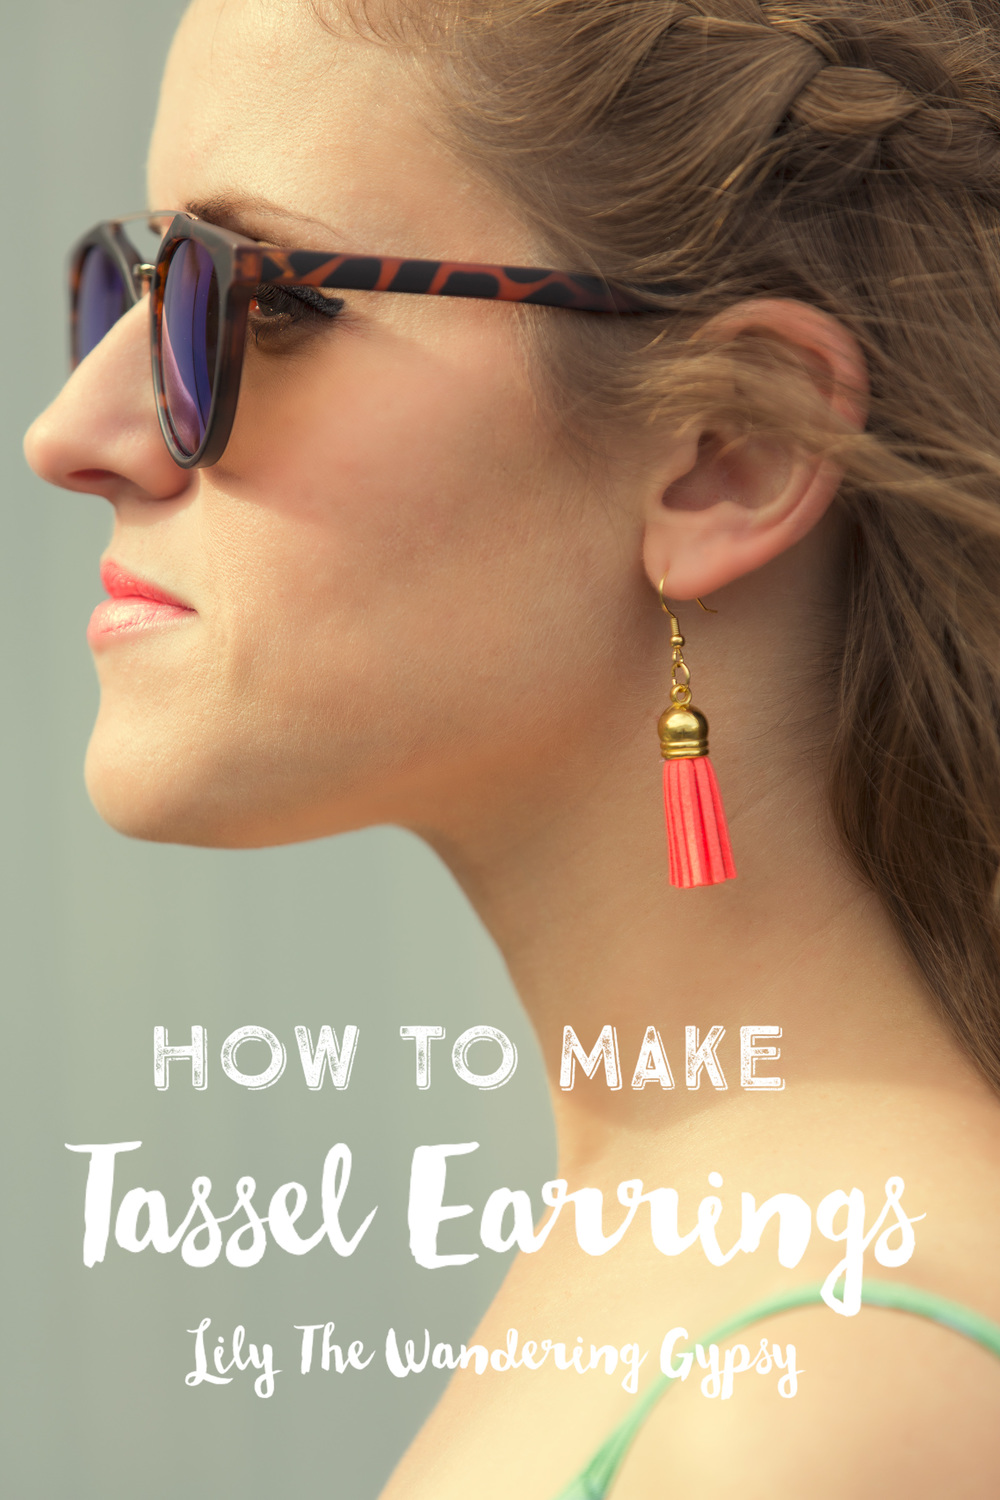 How To Make Tasse1 Earrings - Lily The Wandering Gypsy